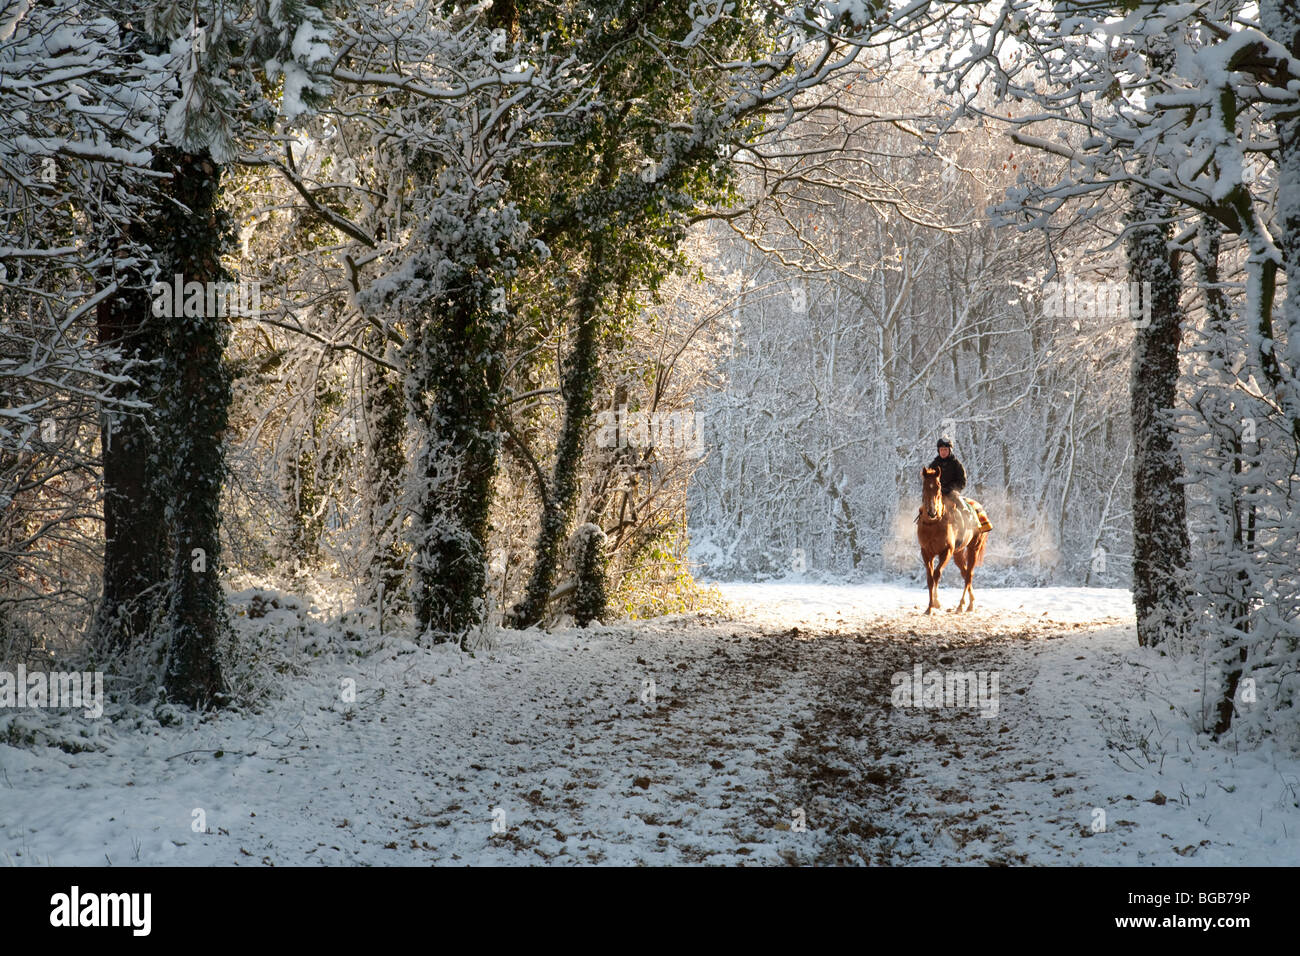 Racehorse and rider emerging from the woods, in winter snow, Newmarket, Suffolk, UK - Stock Image